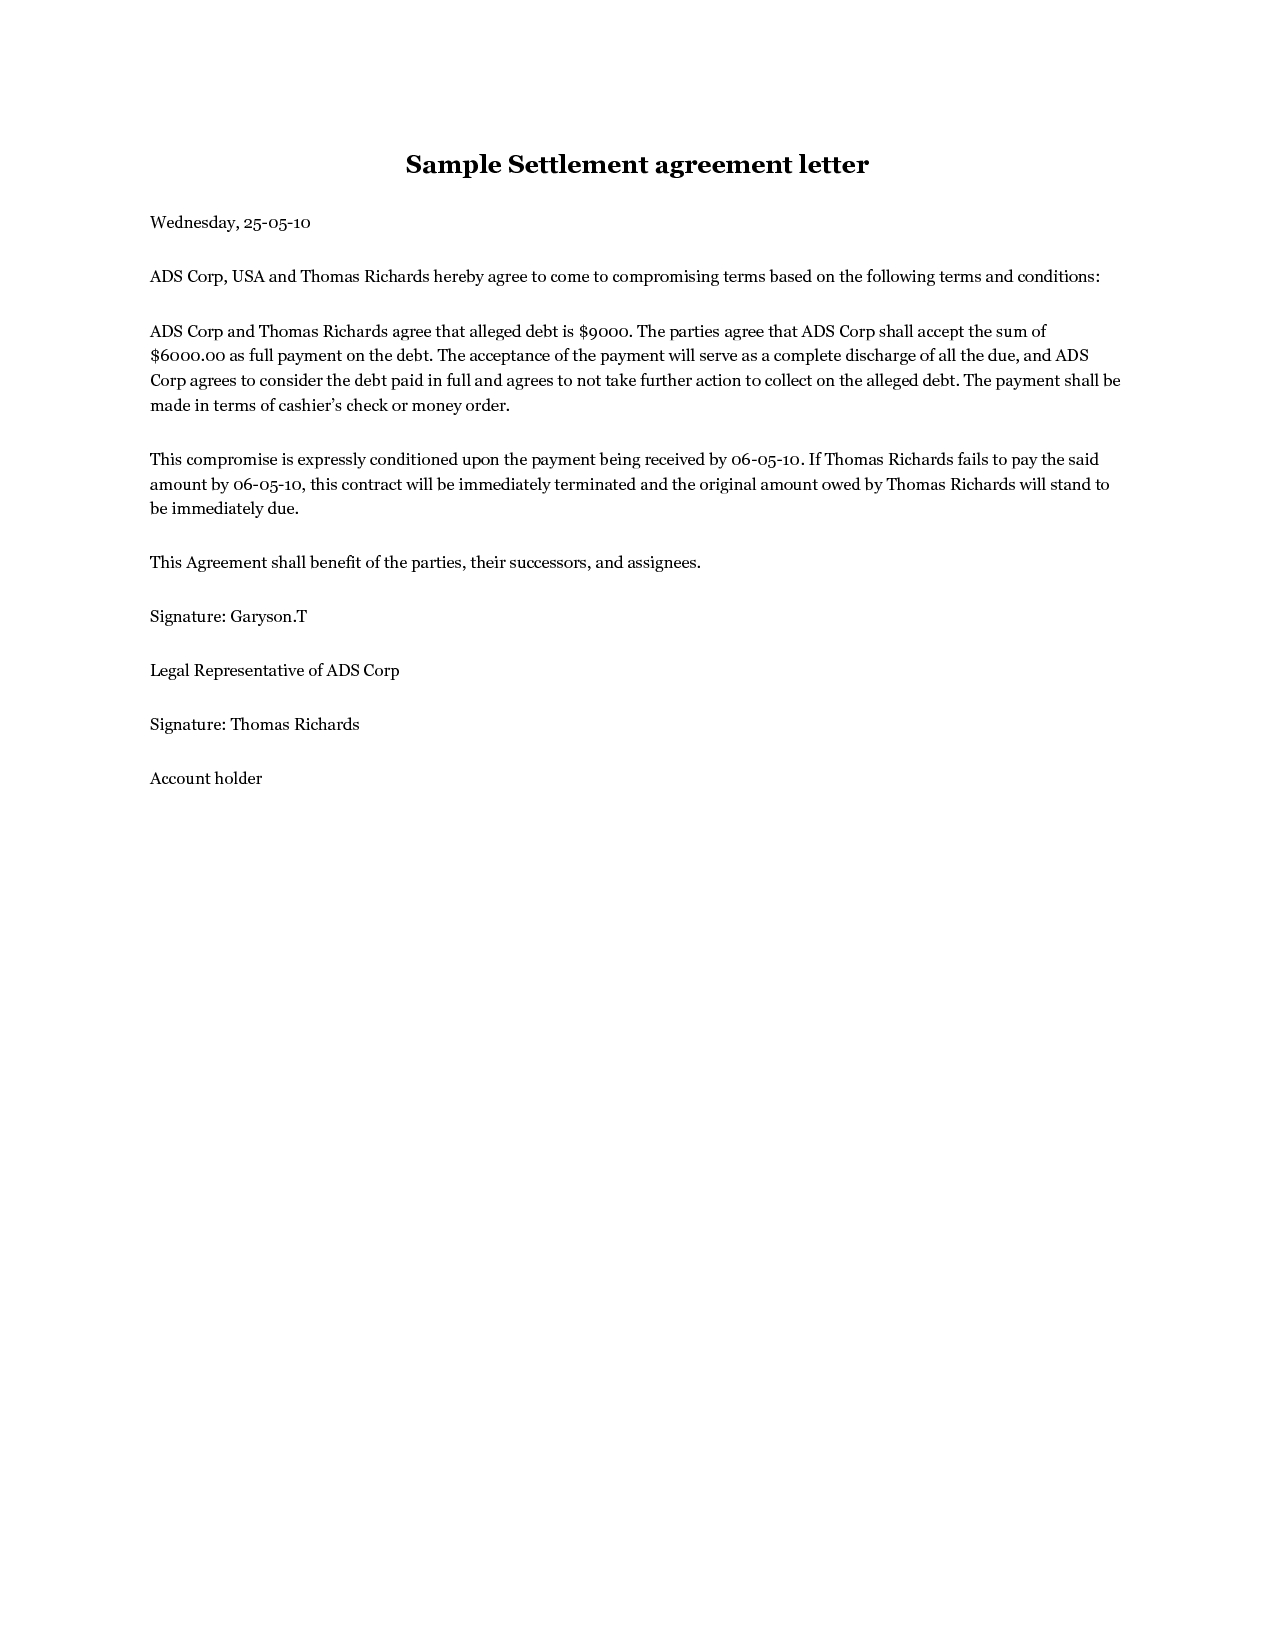 Settlement Agreement Letter Template - Settlement Agreement Letter A Debt Settlement Agreement Letter